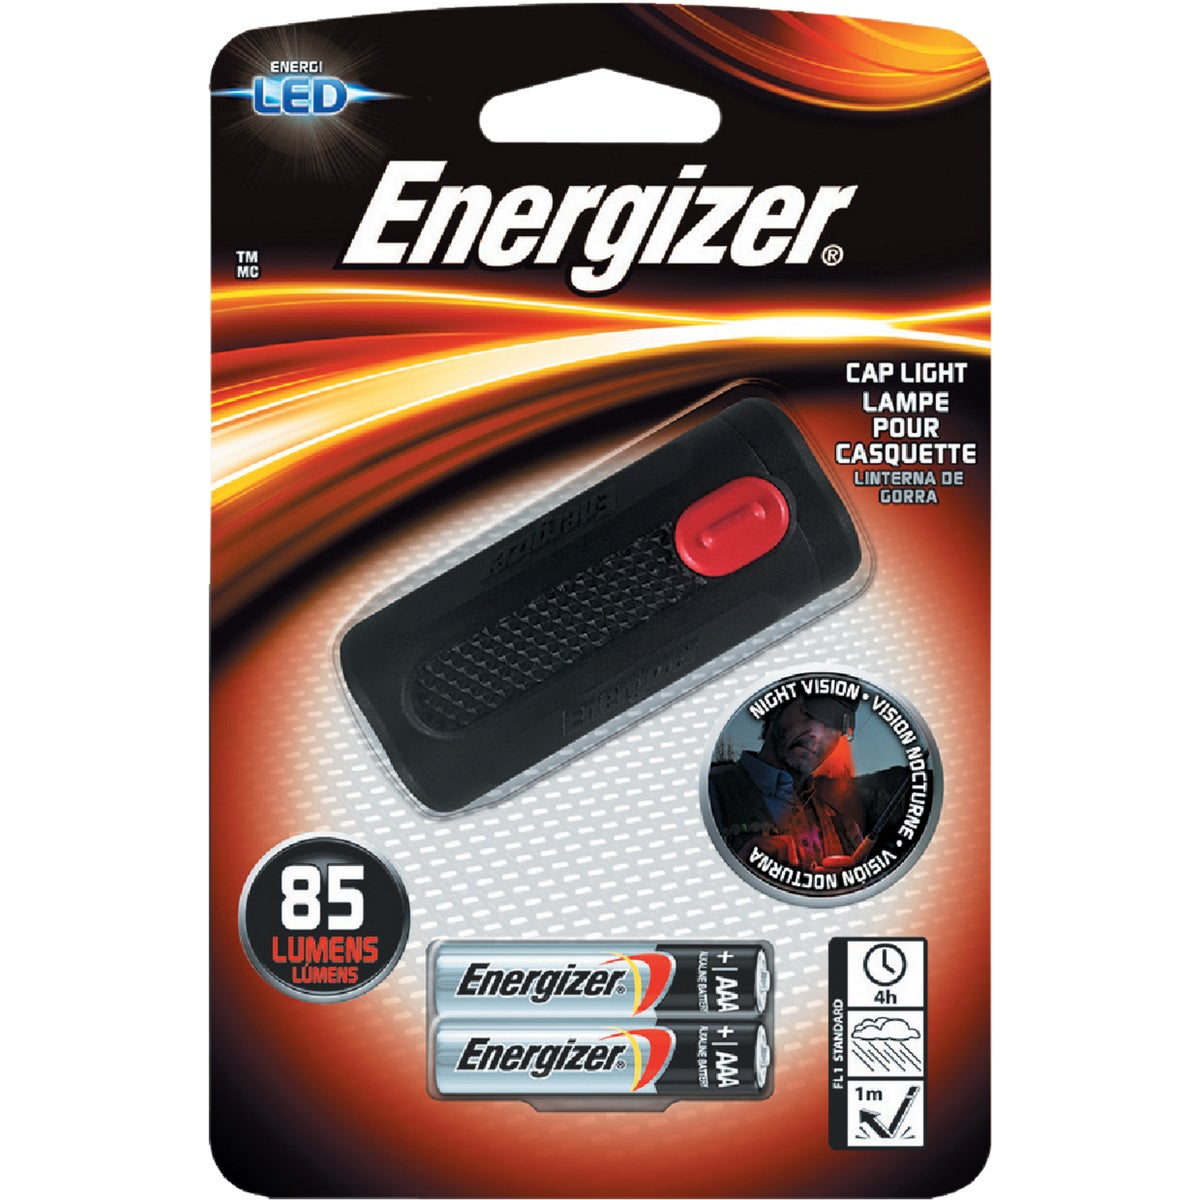 3 LED CAP LIGHT - CAPW2BBP by Energizer